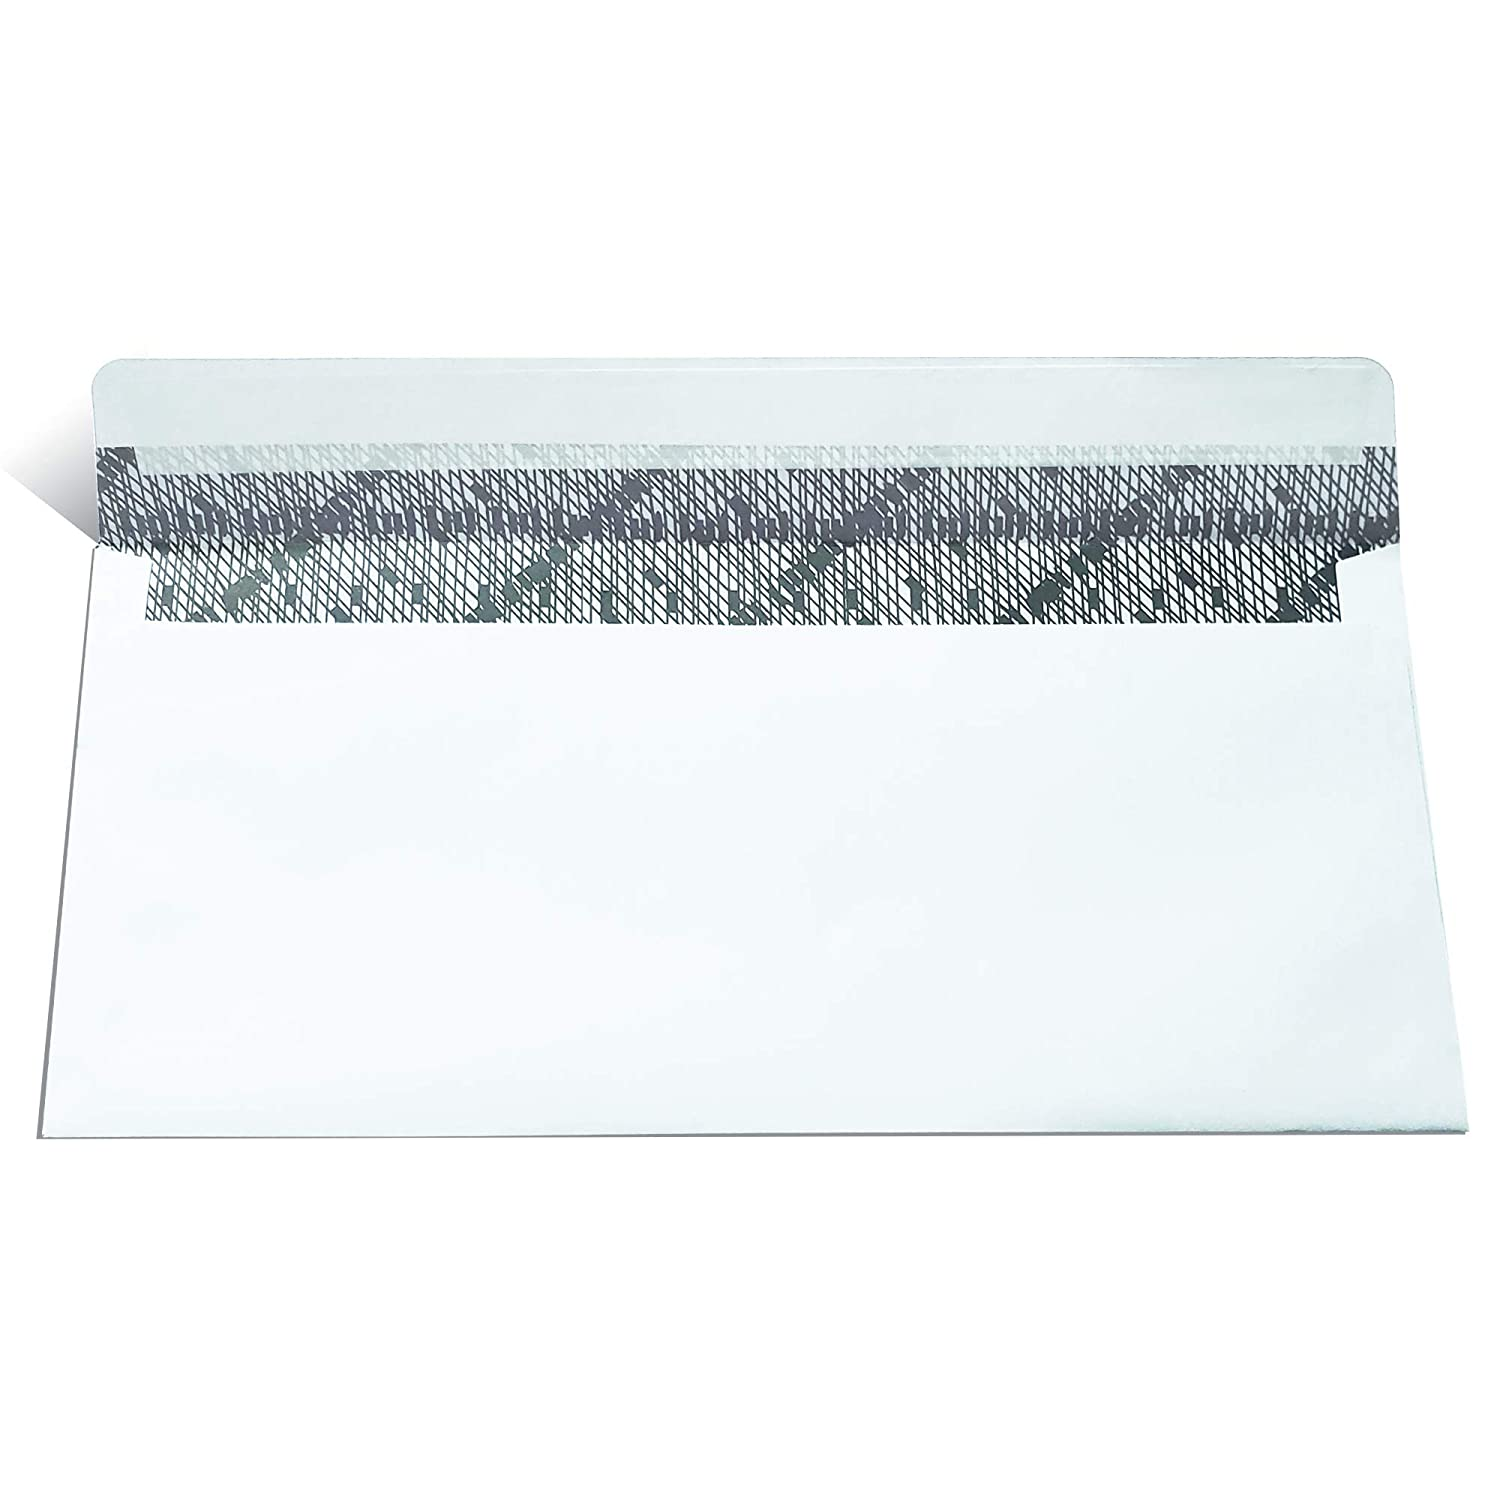 NO #10 Security SELF Seal Business Envelope No Window New Premium Black Security Tint Ideal for Home Office Secure Mailing Peel /& Seal Closure 100 Per Box 24 LB 4-1//8 x 9-1//2 Inches White